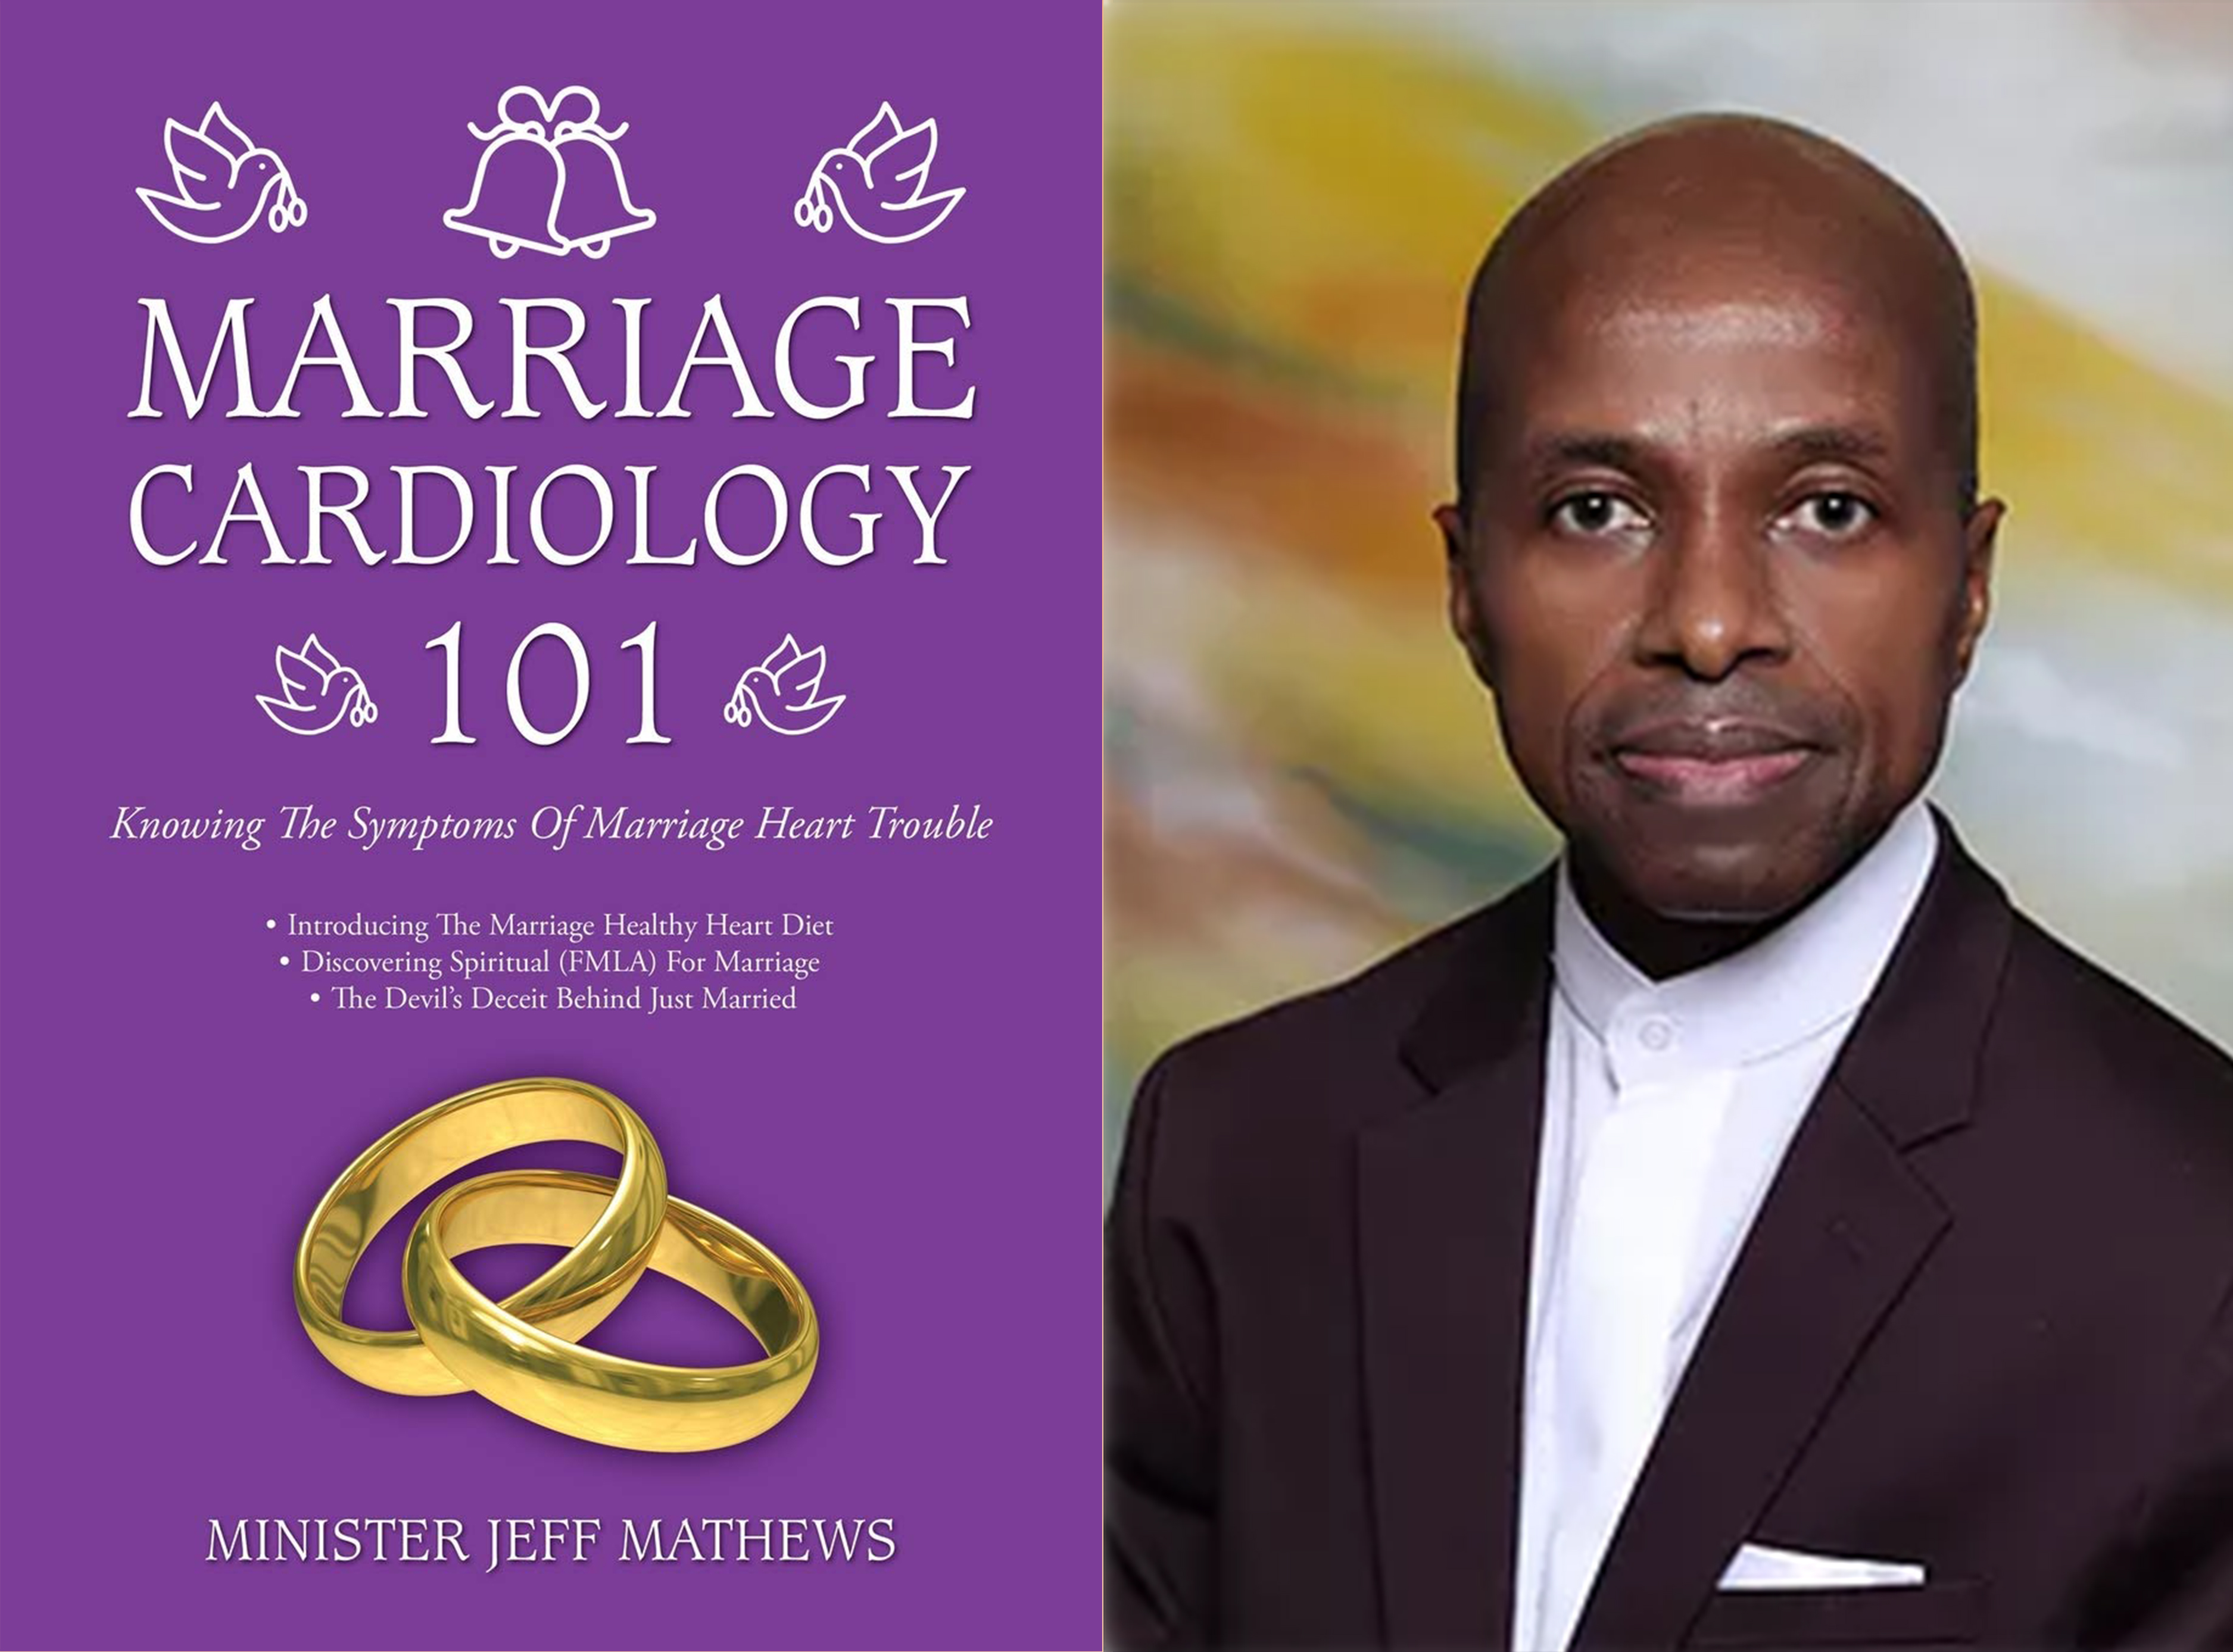 """""""Marriage Cardiology 101: Knowing the Symptoms of Marriage Heart Trouble"""" Is Available Now On Amazon"""